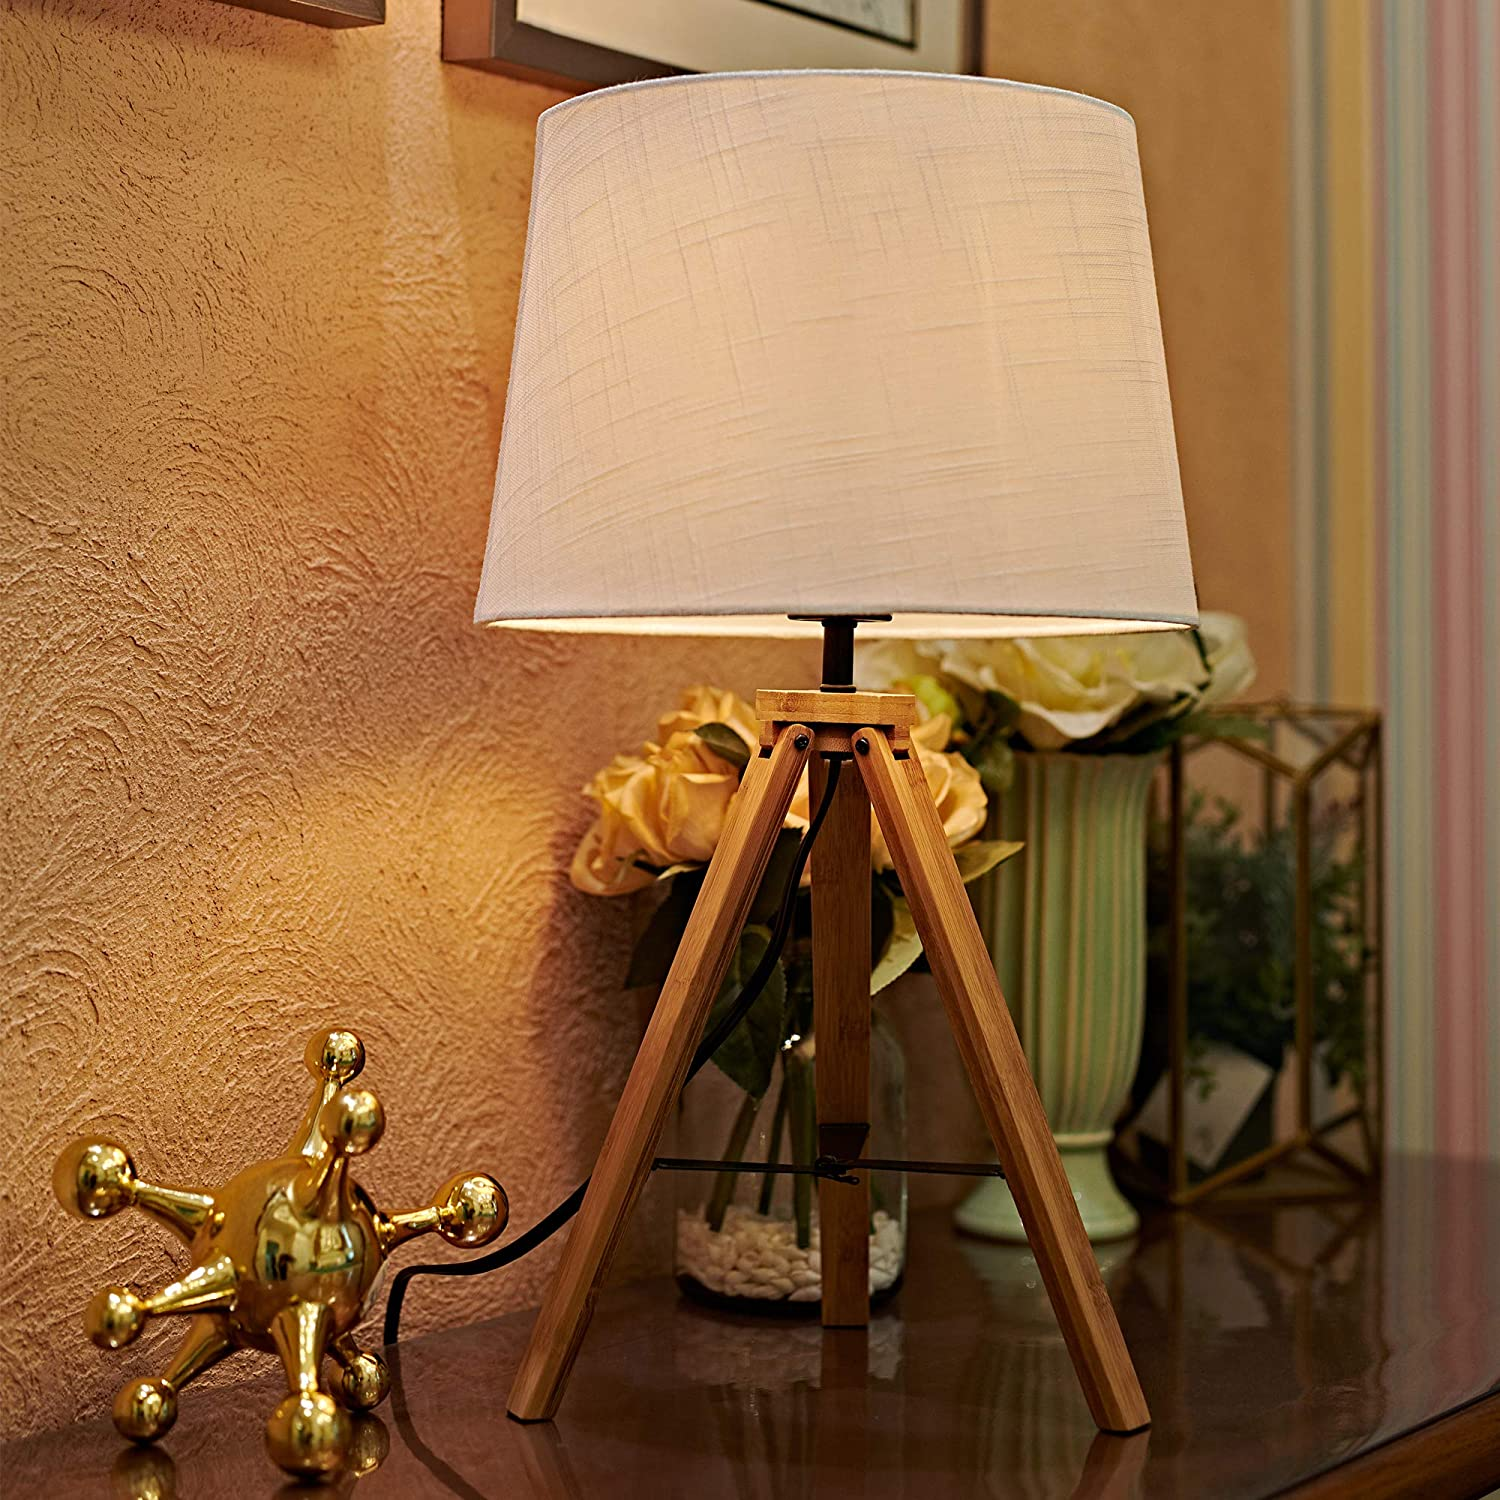 Amazon Com Motini 21 Tripod Table Lamp Modern Besides Desk Lamp Bamboo With White Fabric Shade For Bedroom Study Livingroom End Table Light Ul Listed Home Improvement